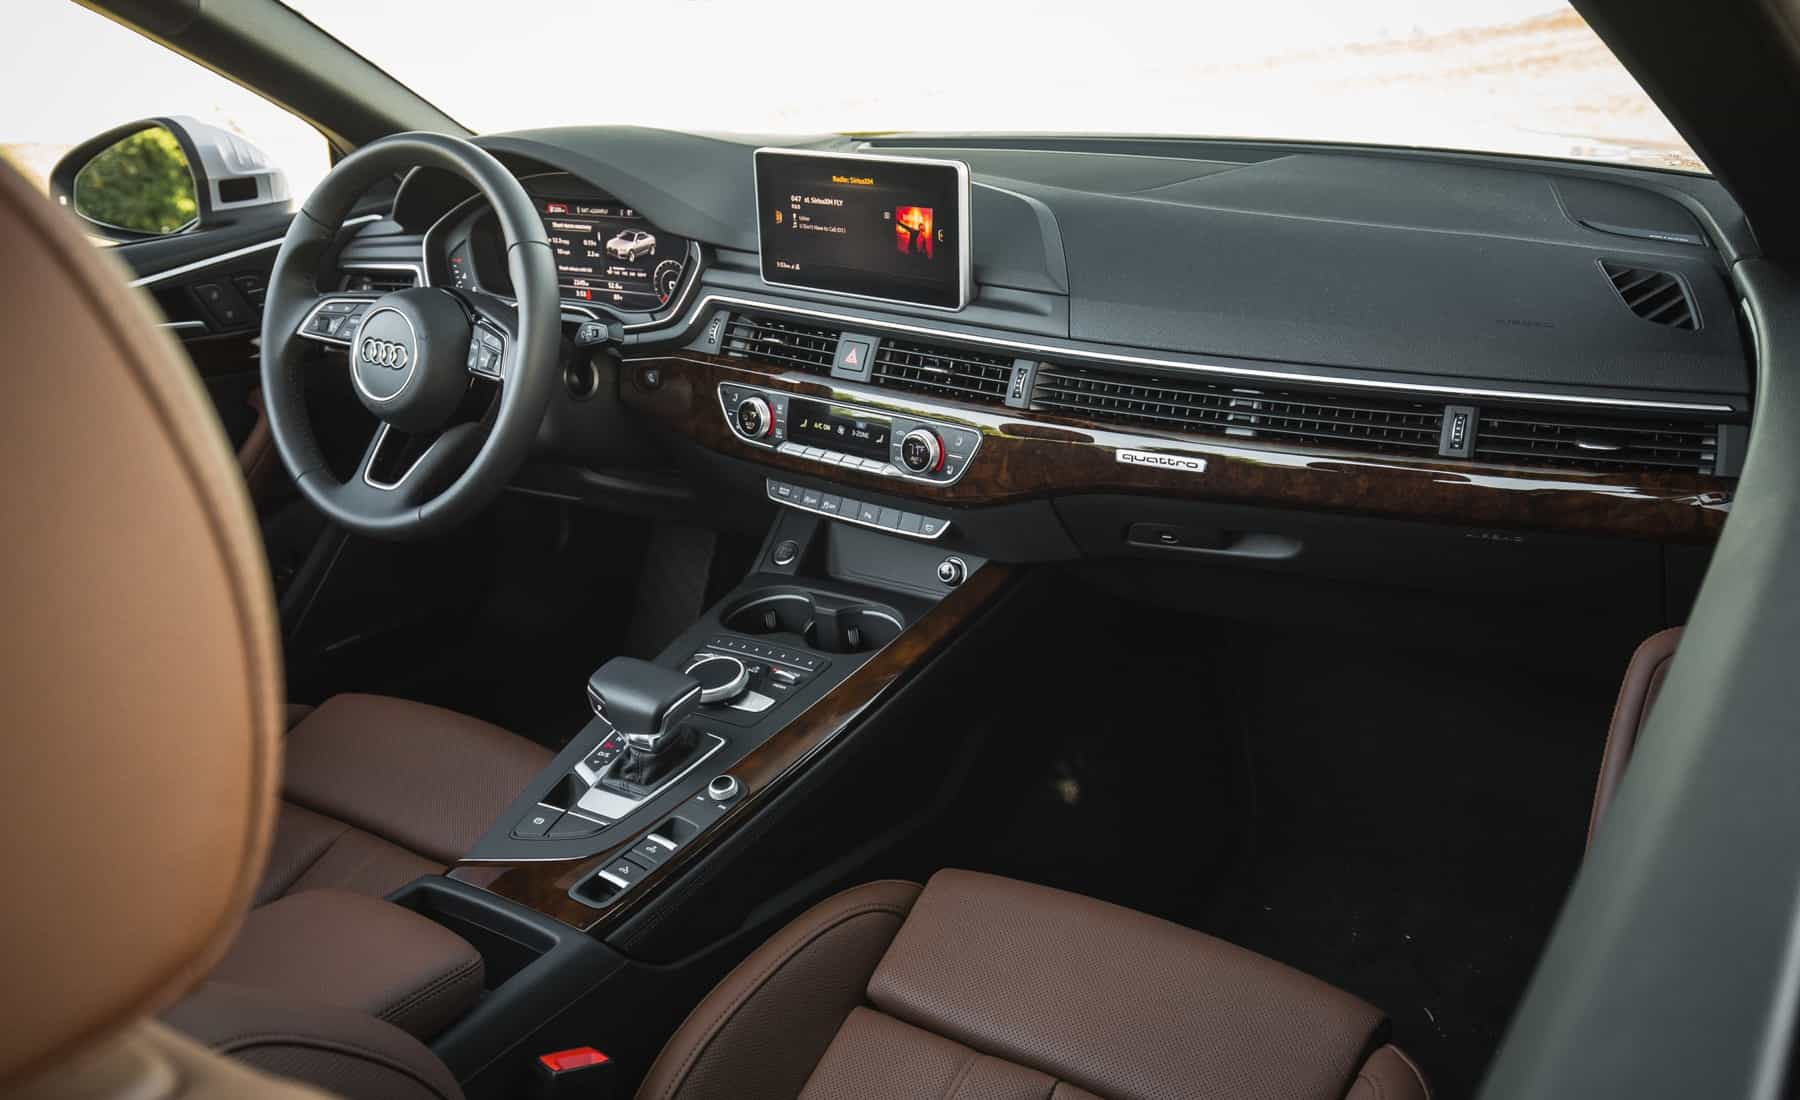 2018 Audi A5 Cabriolet Interior Dashboard (Photo 19 of 45)